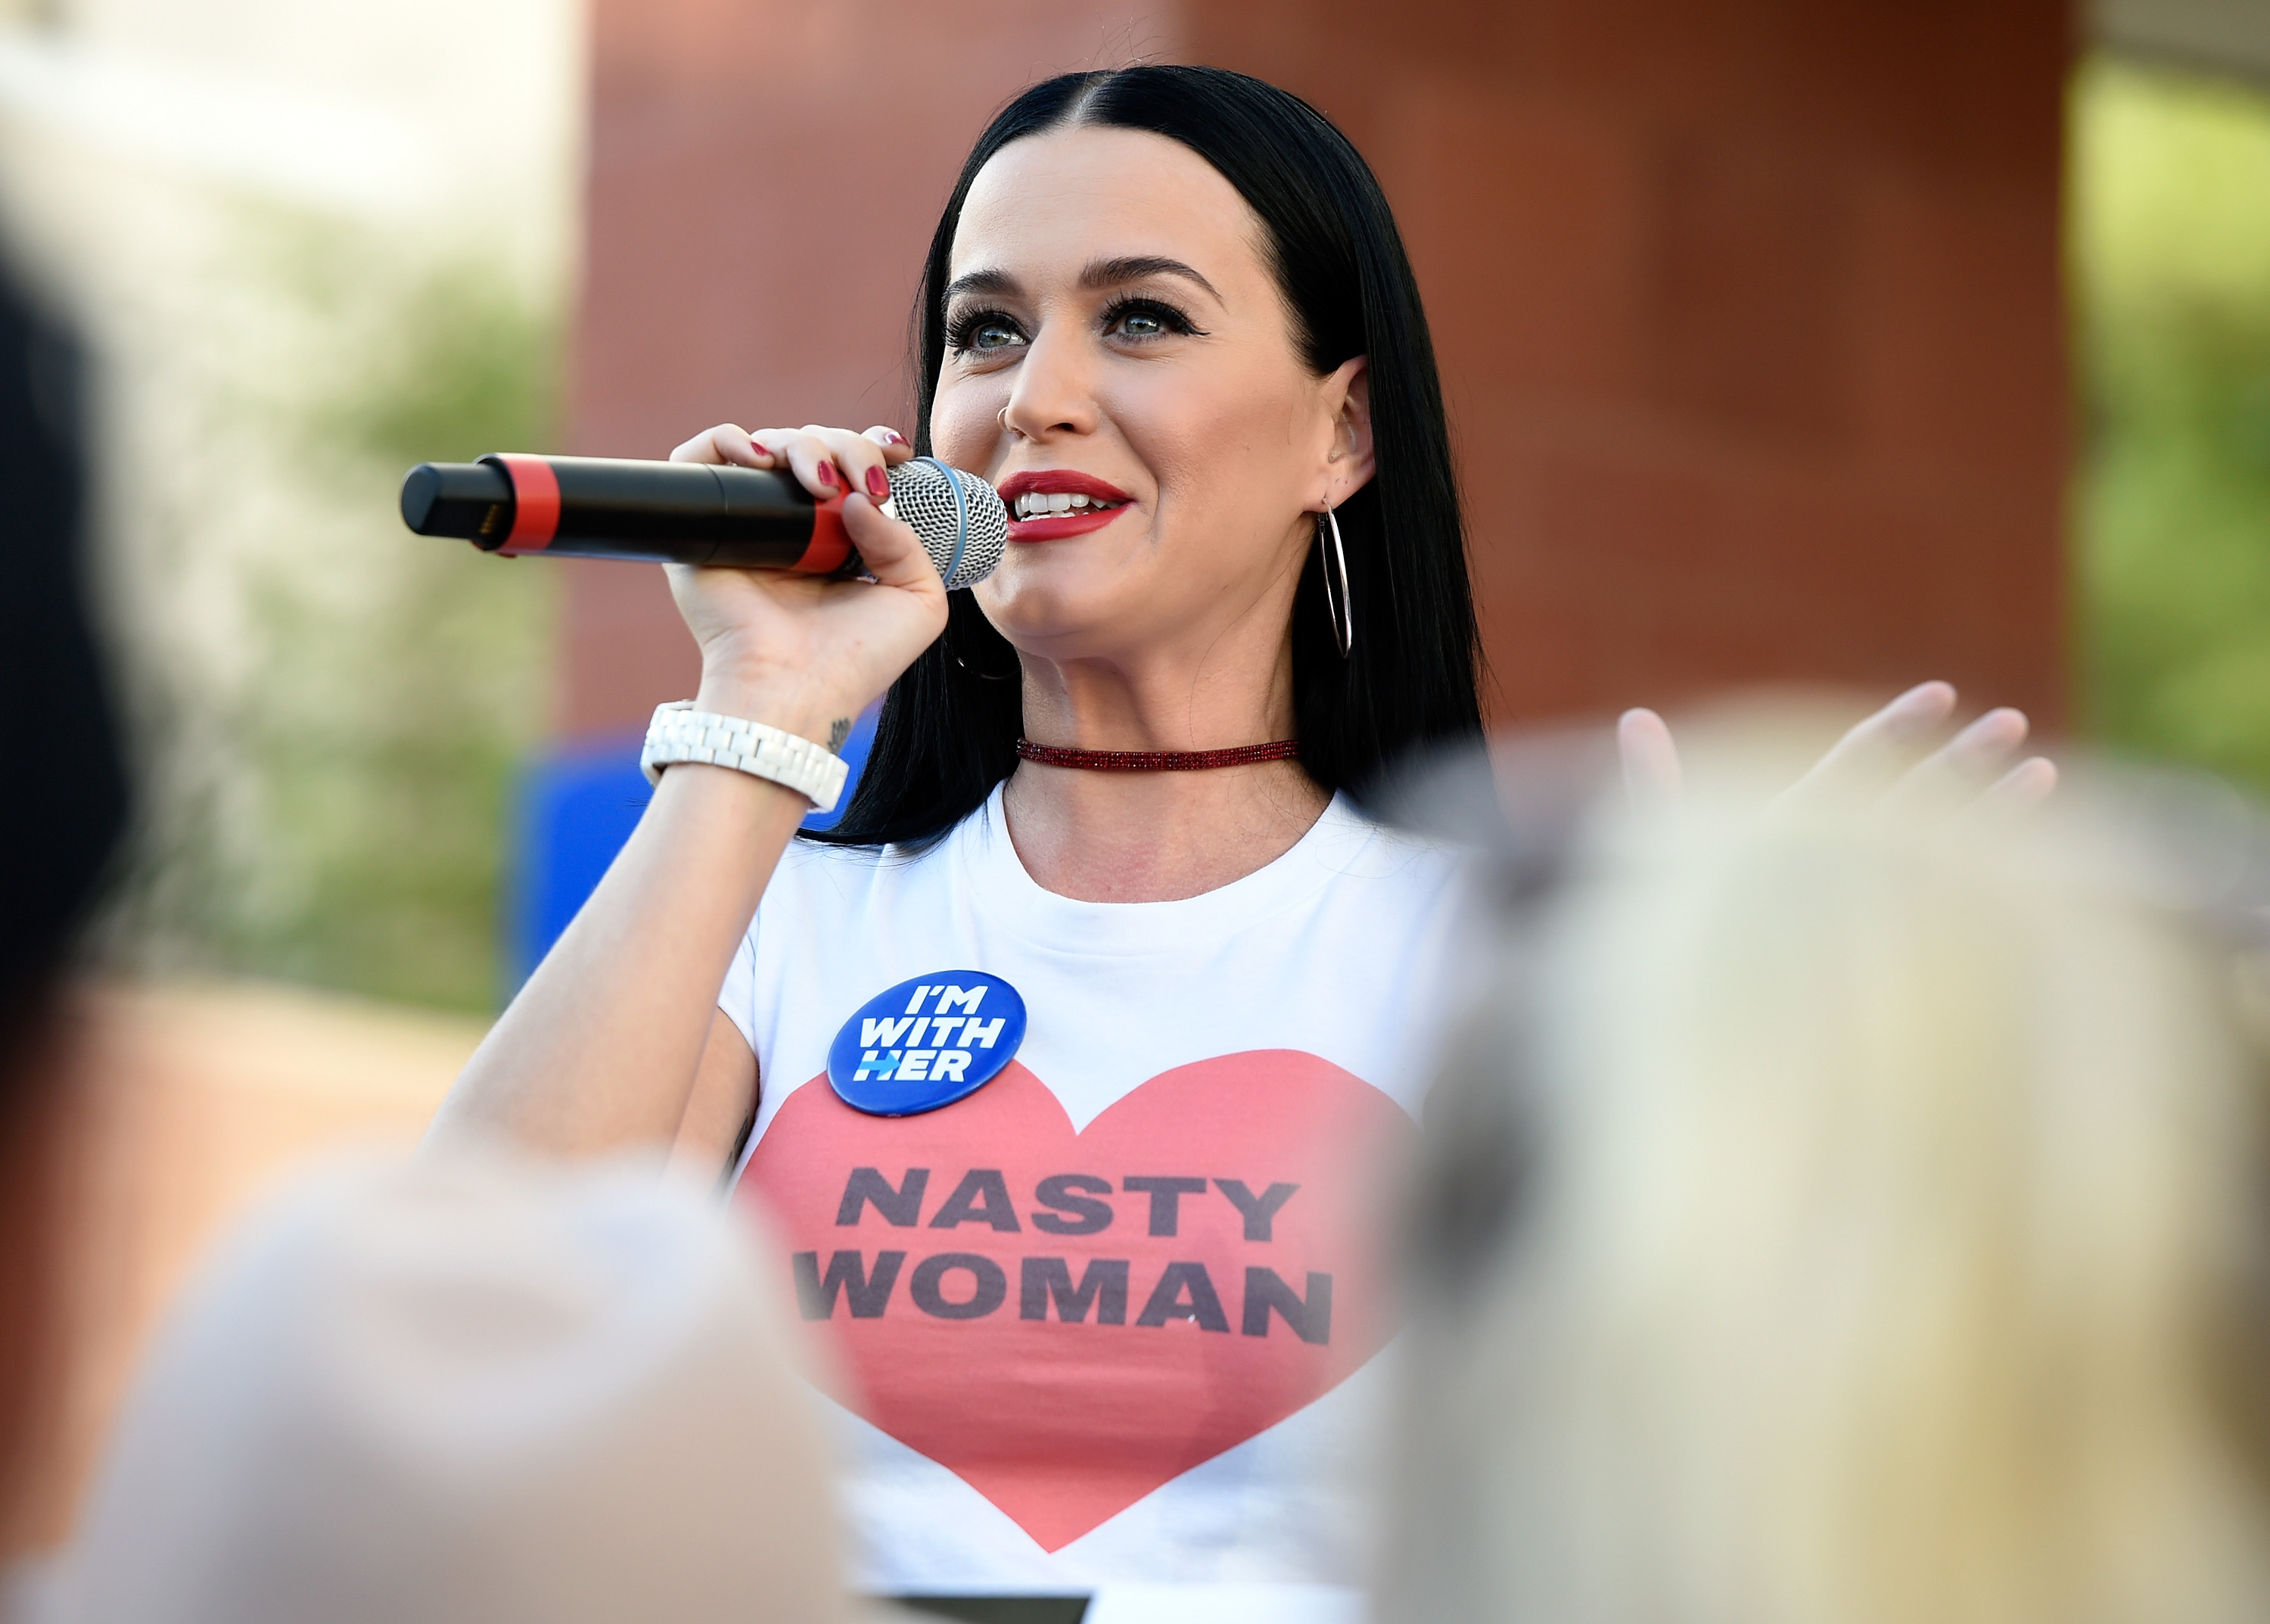 """Katy Perry wearing a """"Nasty Woman"""" shirt while speaking into a mic at a political rally"""